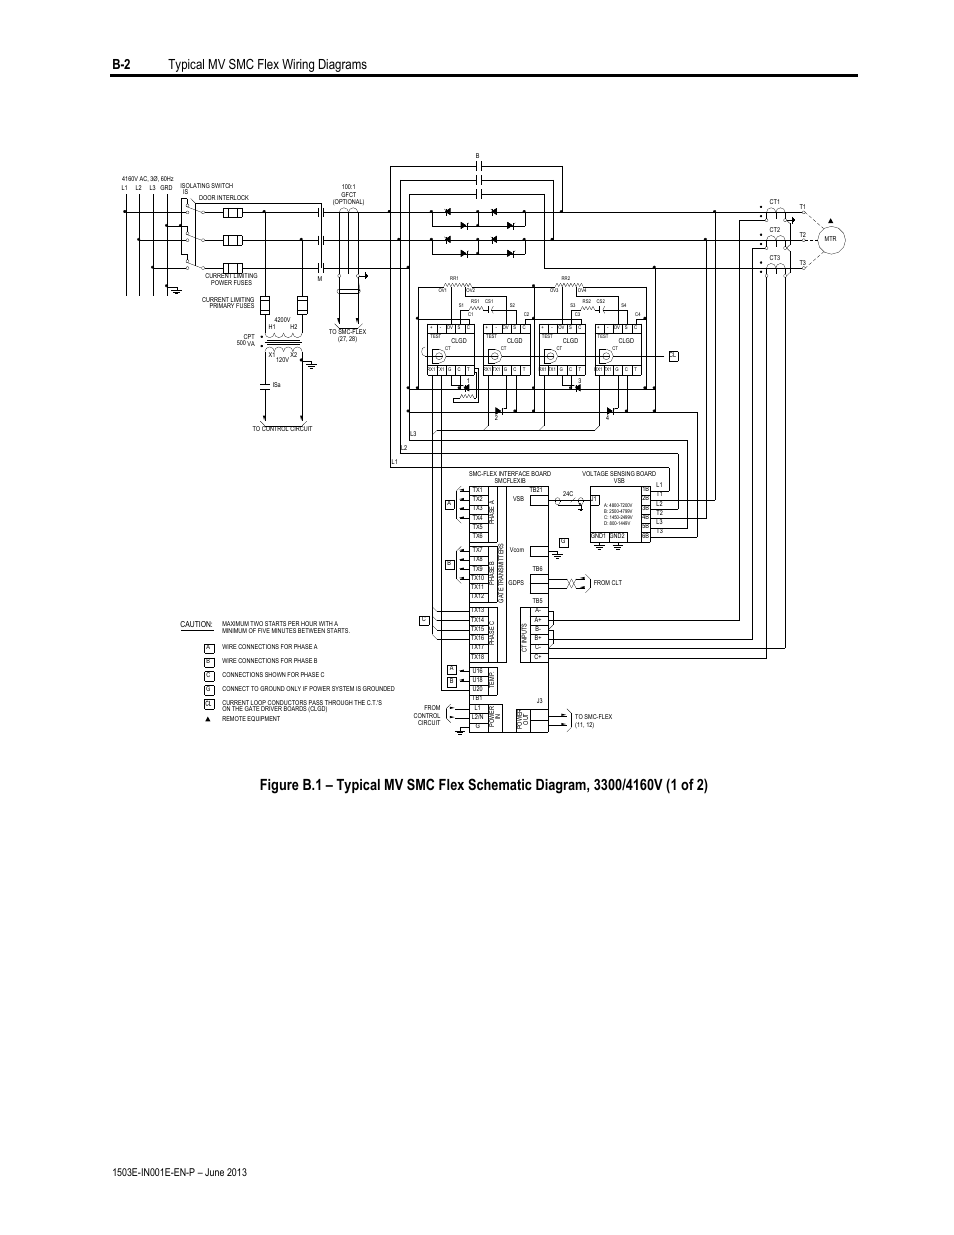 smc coil sy5140 wiring diagram wiring diagrams schematics wet jet wiring  diagram nice smc solenoid valve